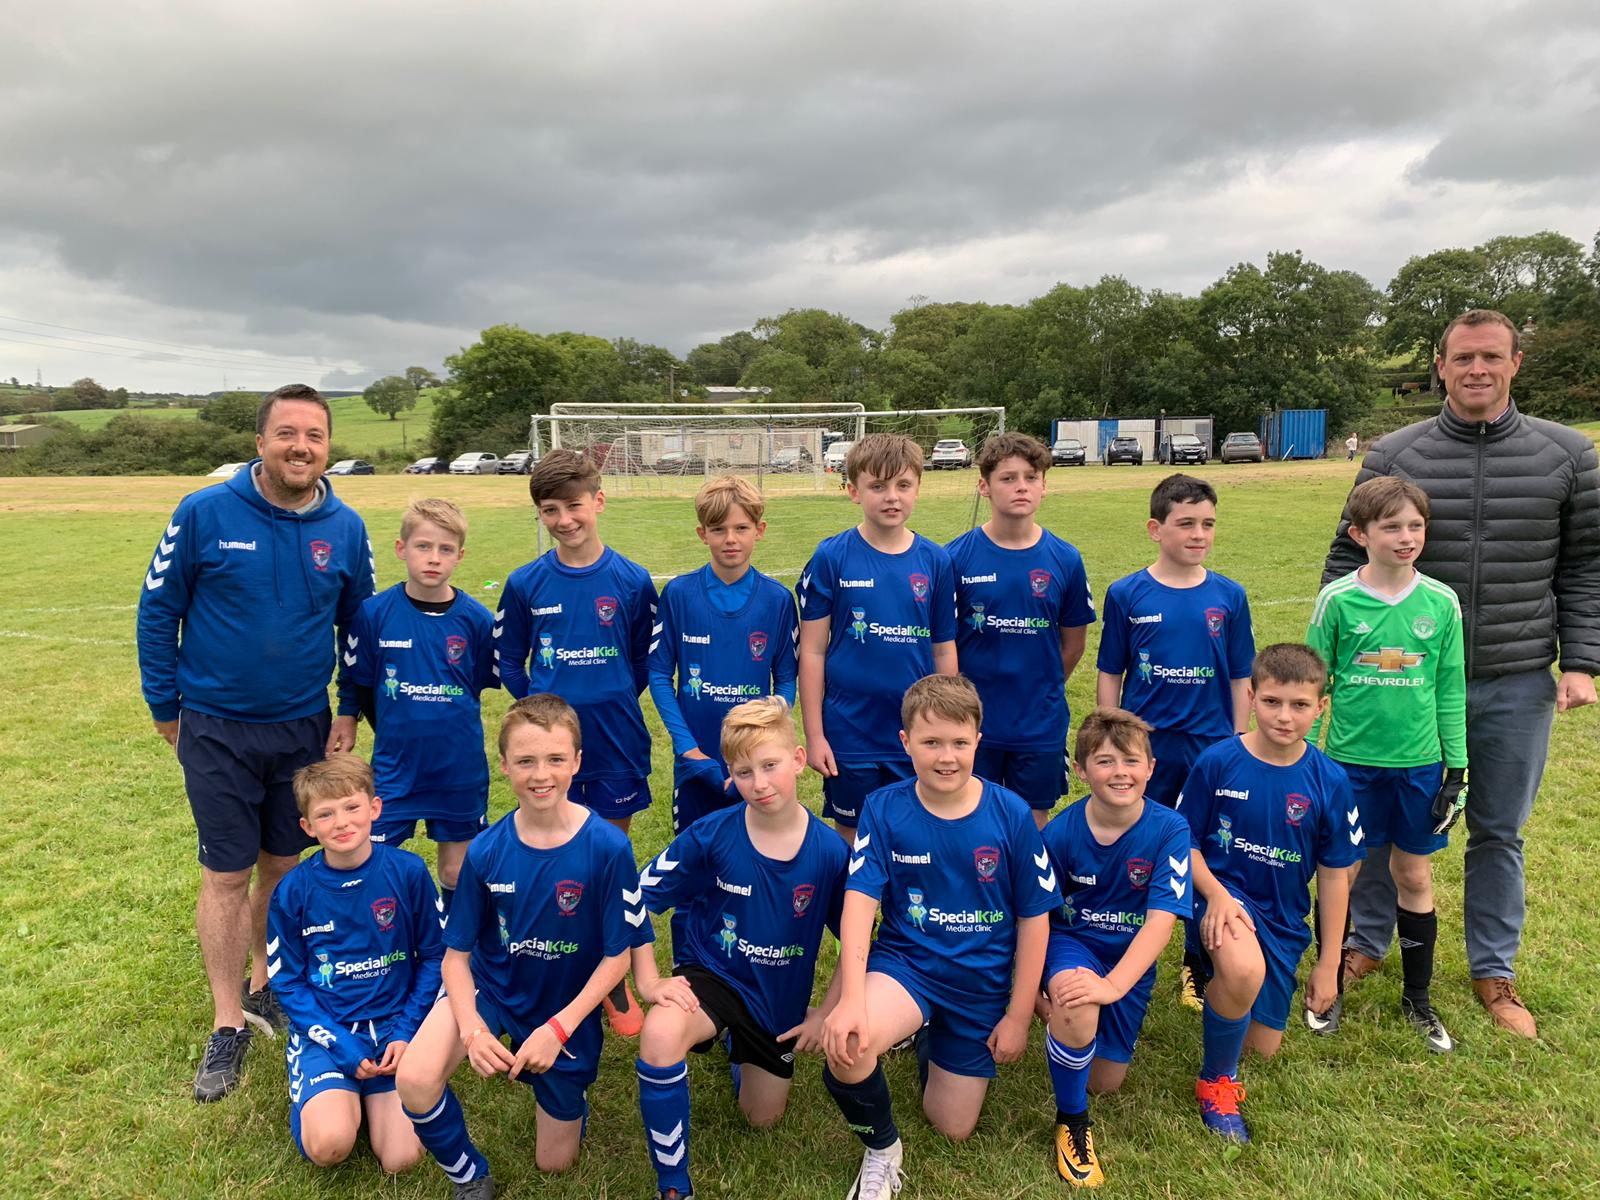 Corkbeg U-12'A' had a great start to the season against Glounthaune United